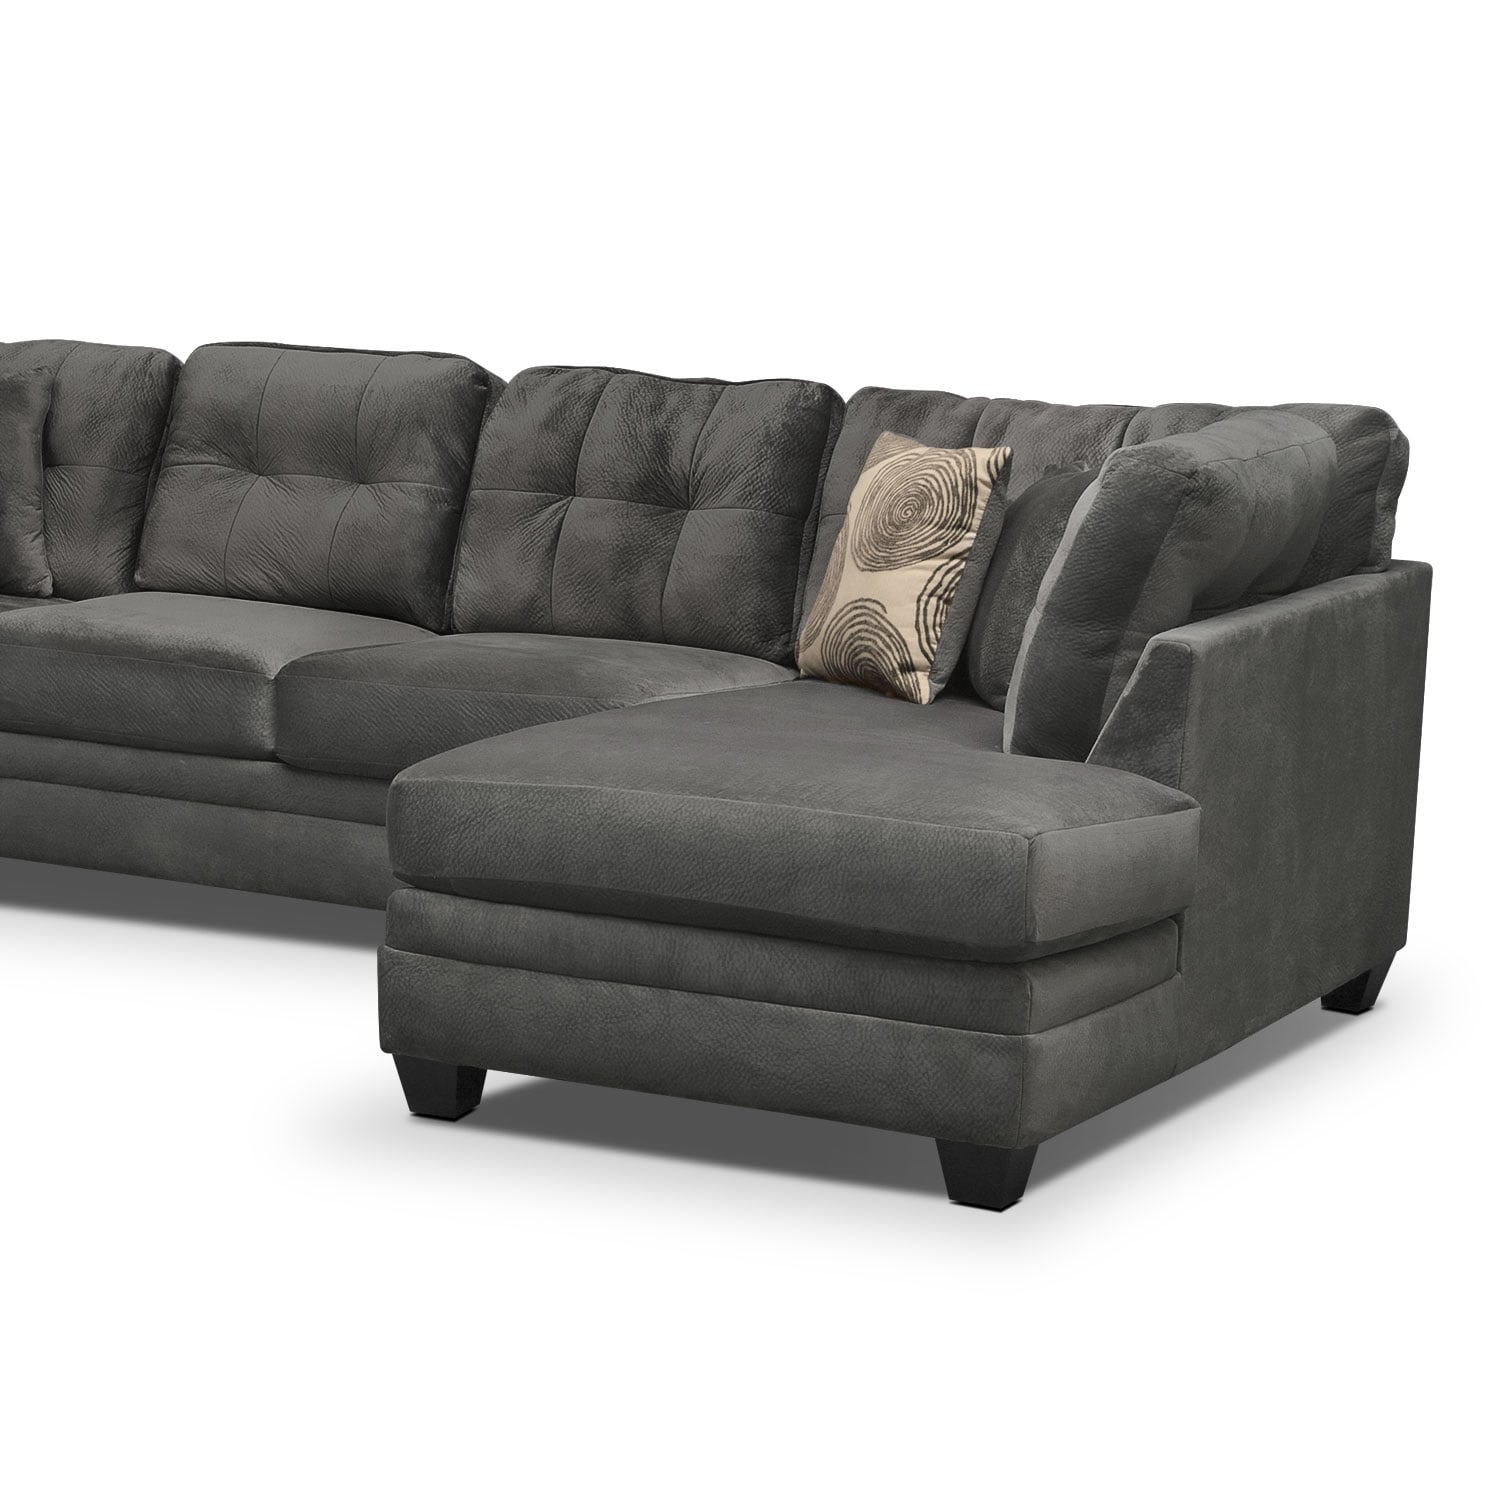 back of sofa facing fireplace dark maroon leather cordelle 3 piece sectional with right chaise gray